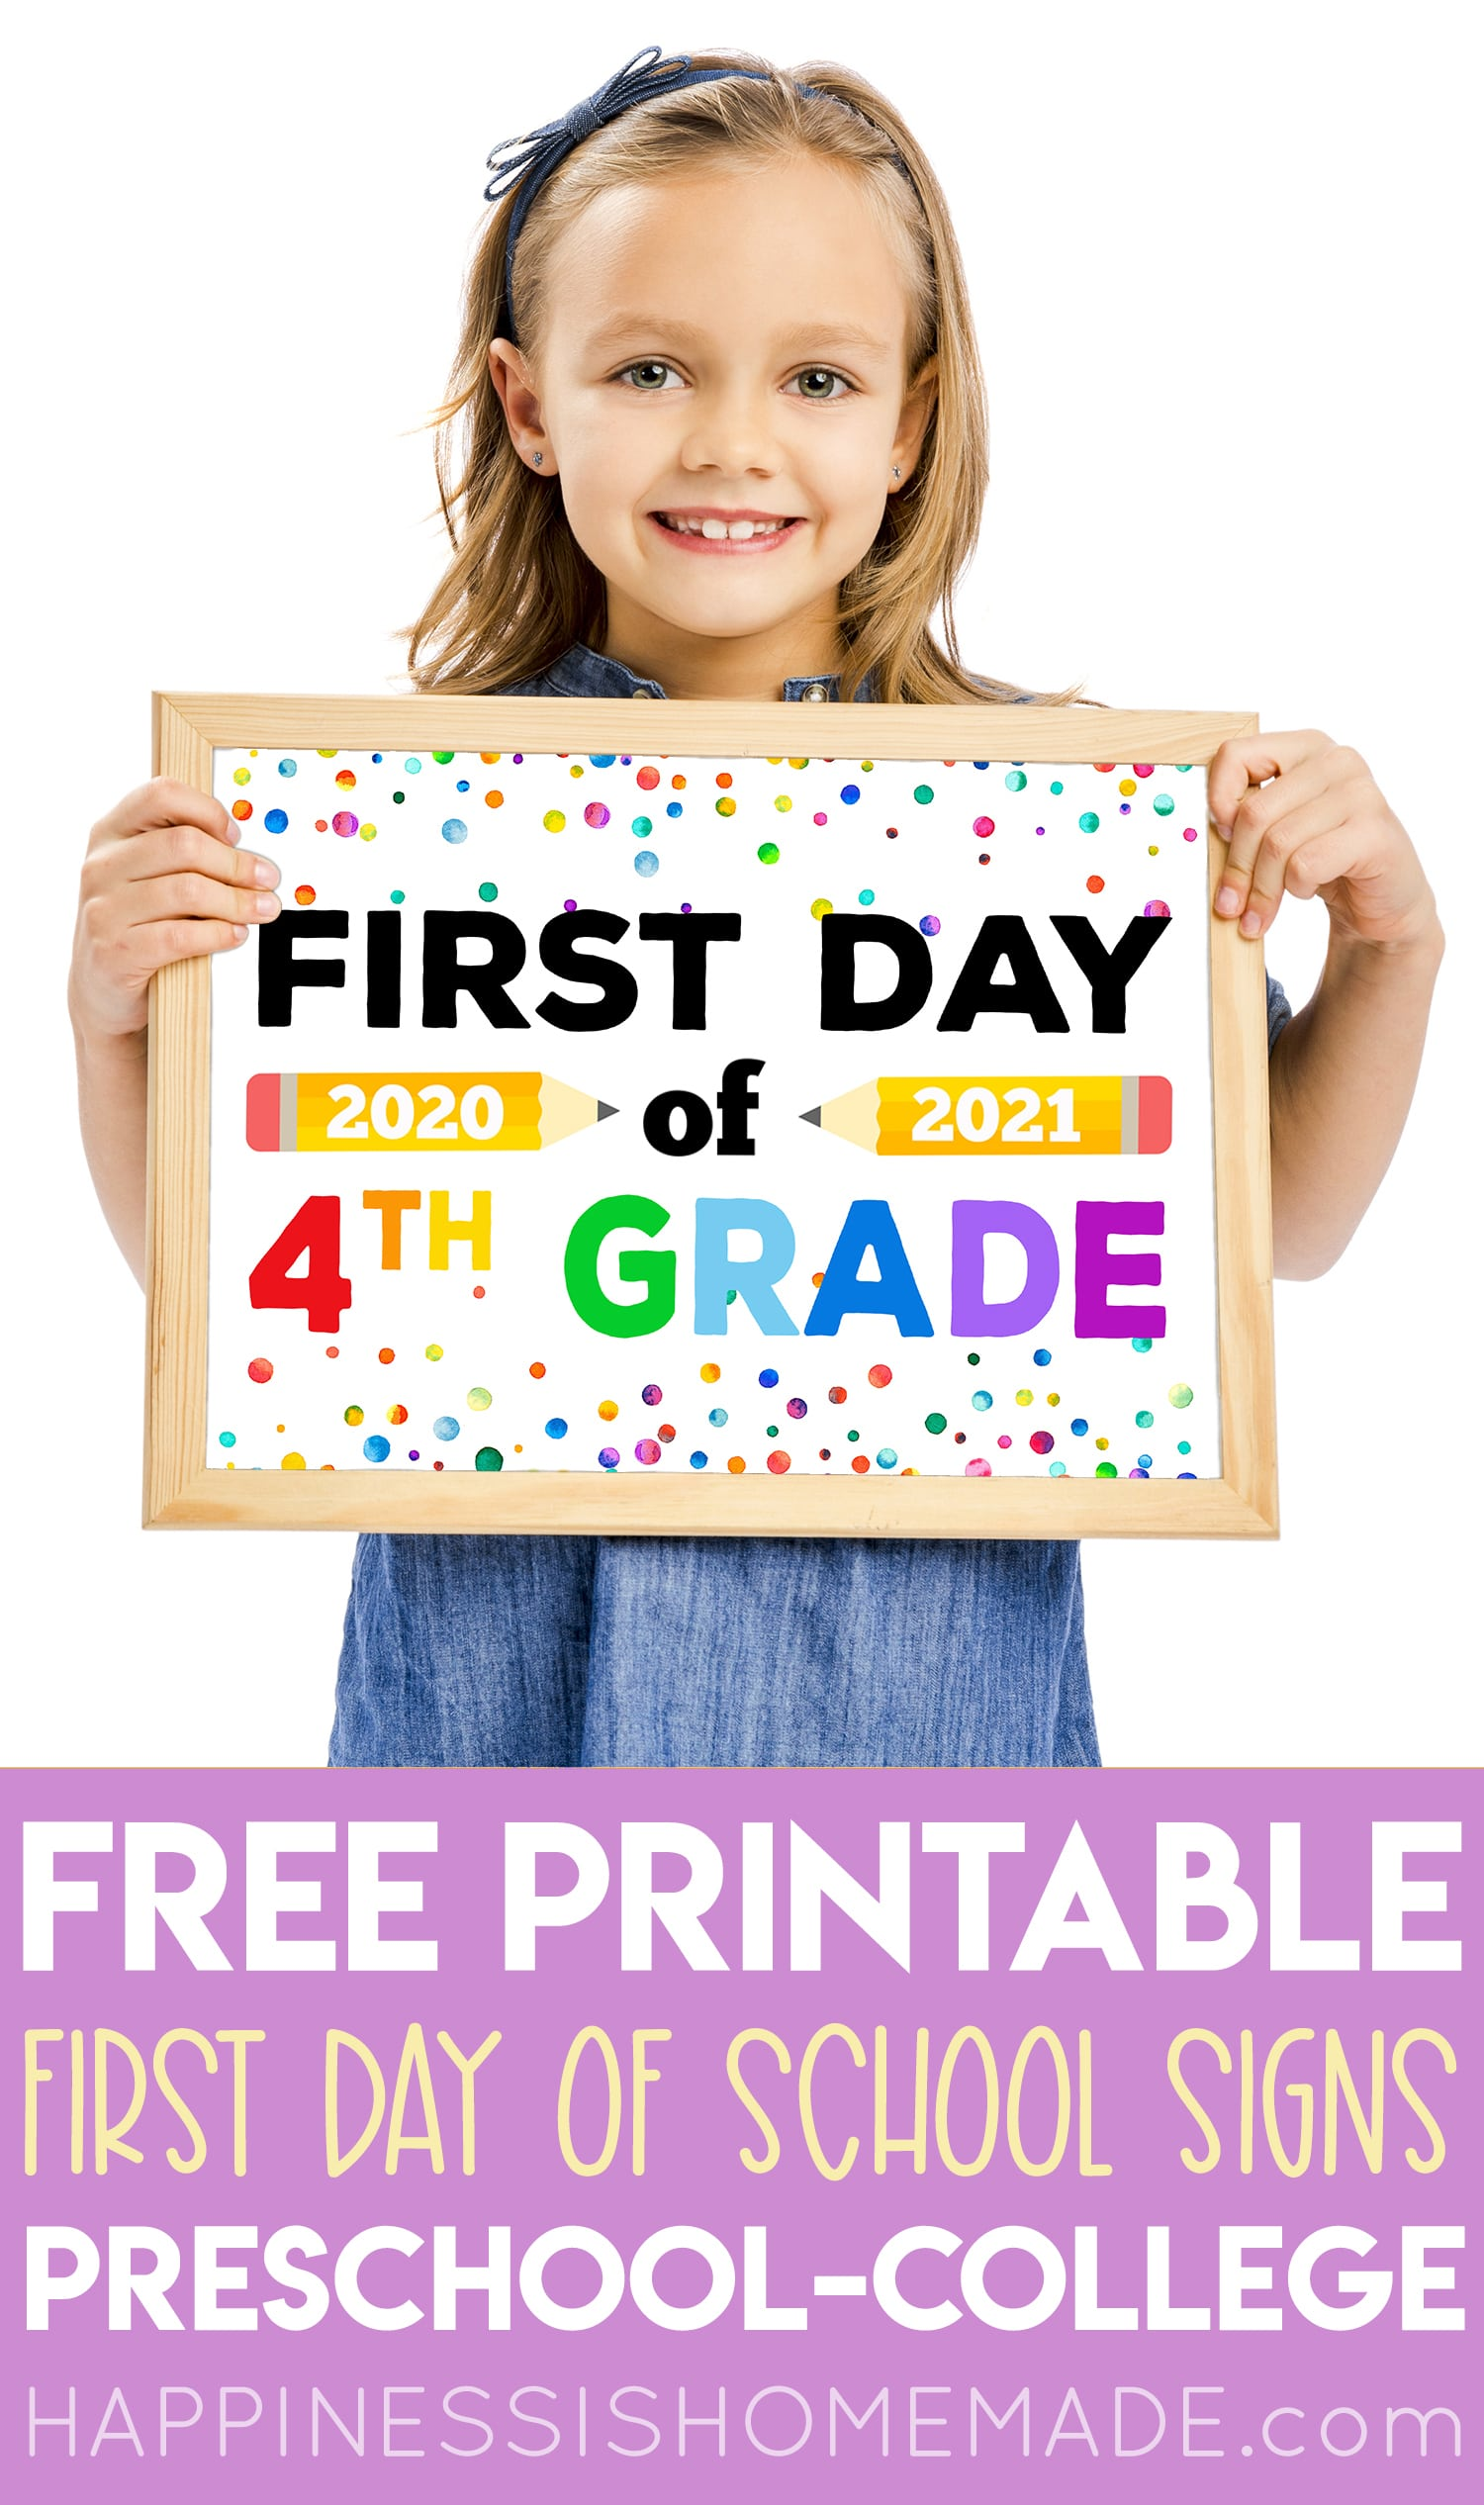 hight resolution of Free Printable First Day of School Signs 2020 - Happiness is Homemade